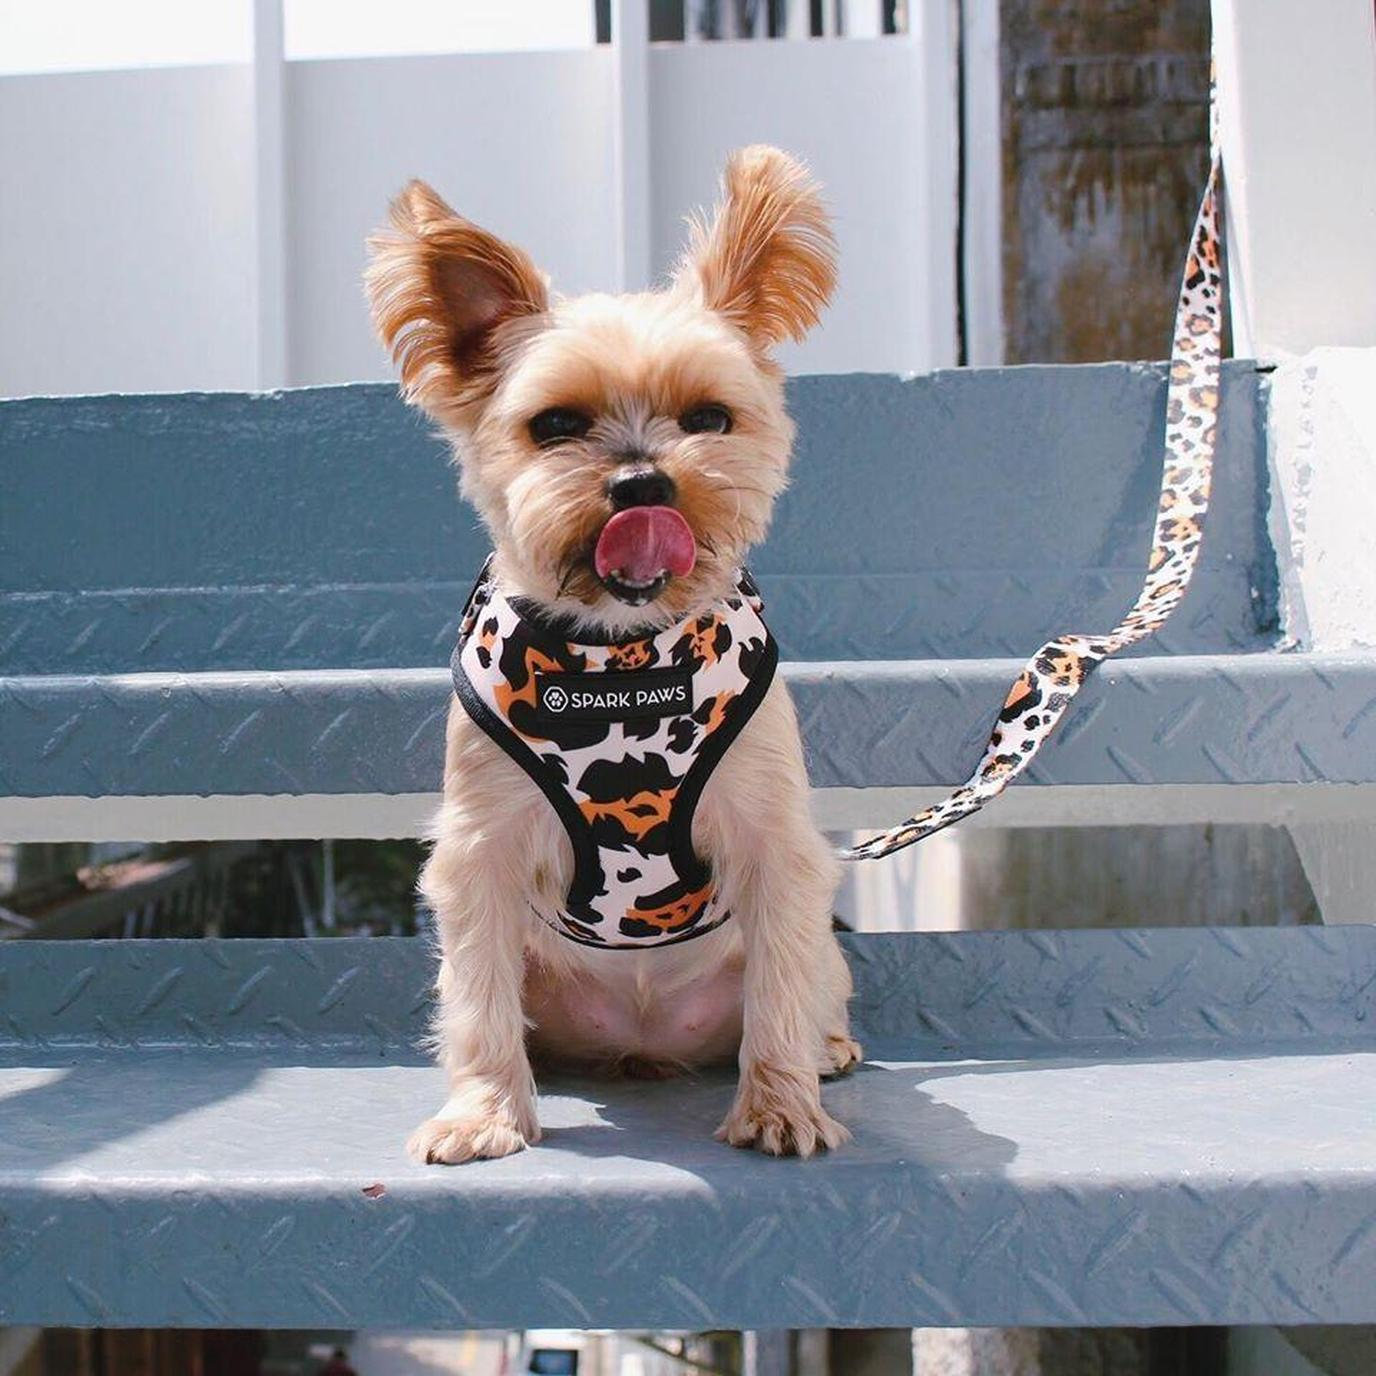 A Yorkie Wears a Spark Paws Leopard Harness Purchased From a Black Friday Deal for Dogs.